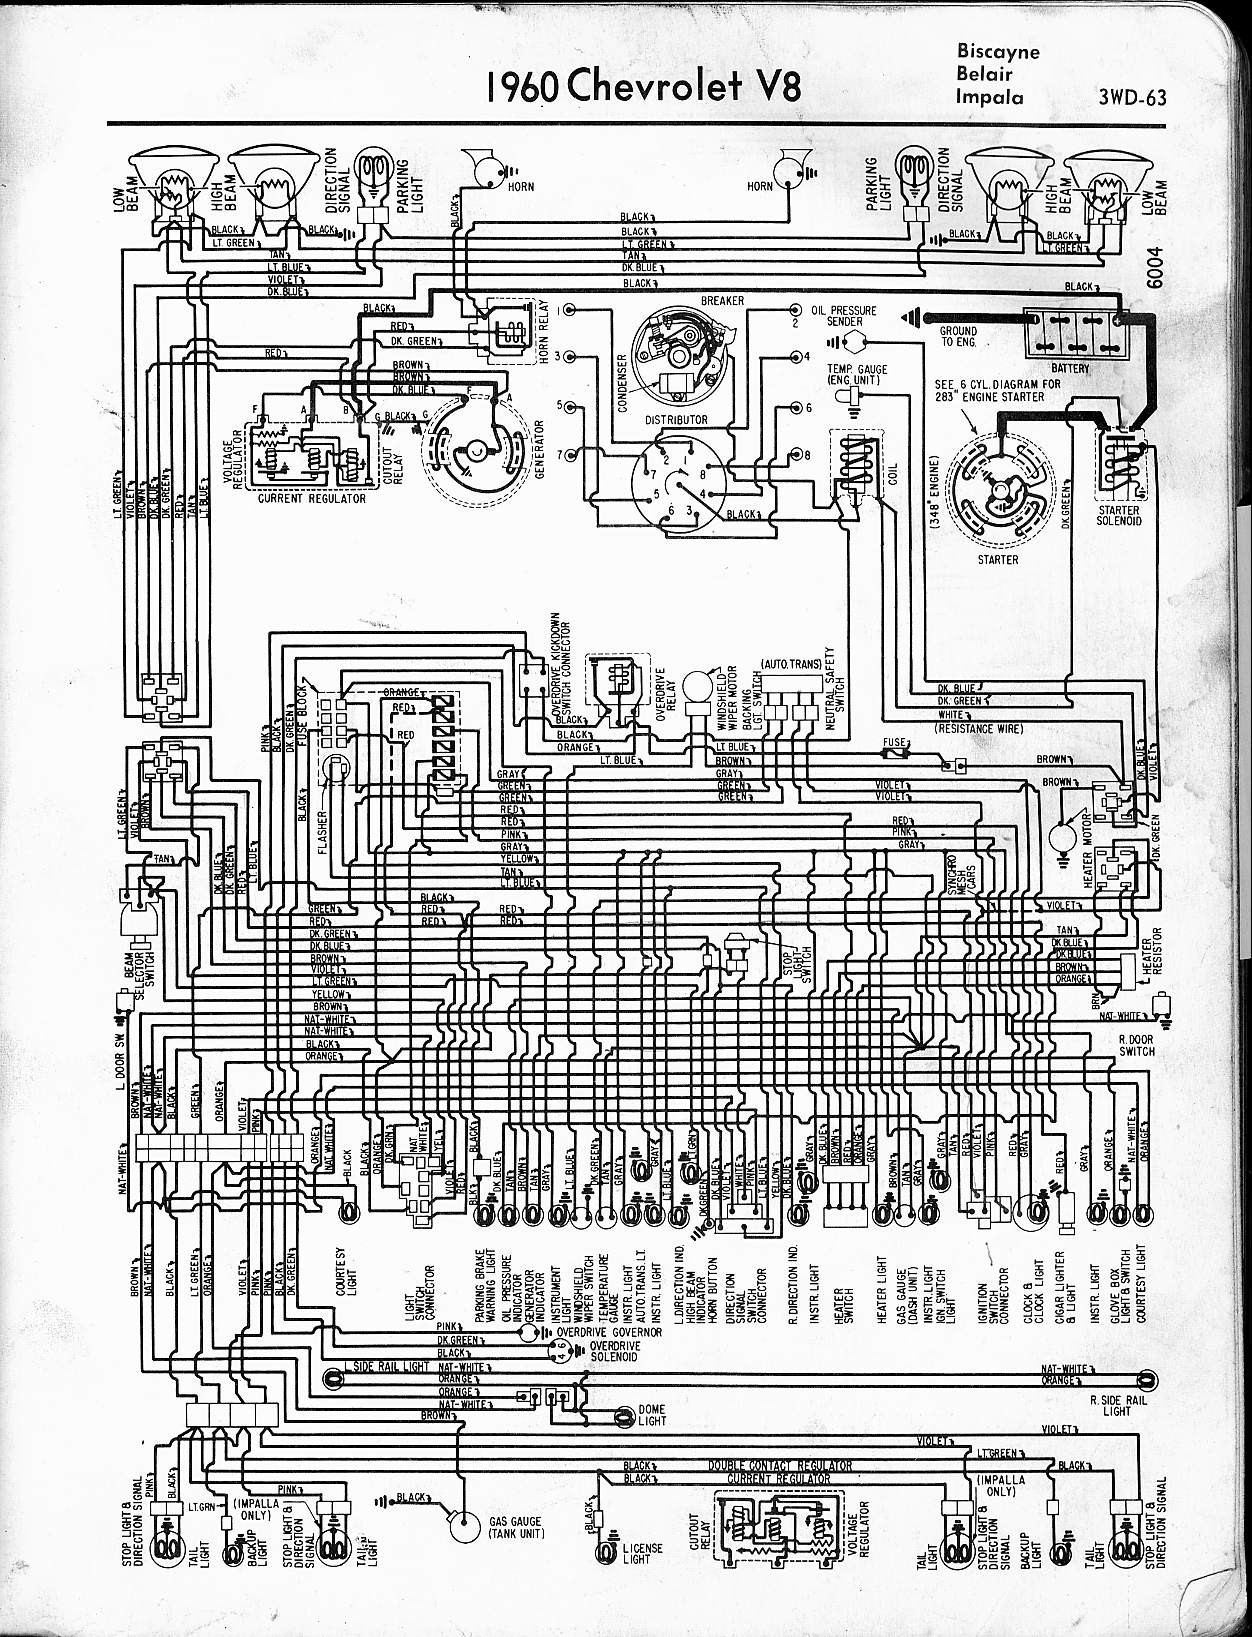 2005 Chevy Malibu Engine Diagram 57 65 Chevy Wiring Diagrams Of 2005 Chevy Malibu Engine Diagram